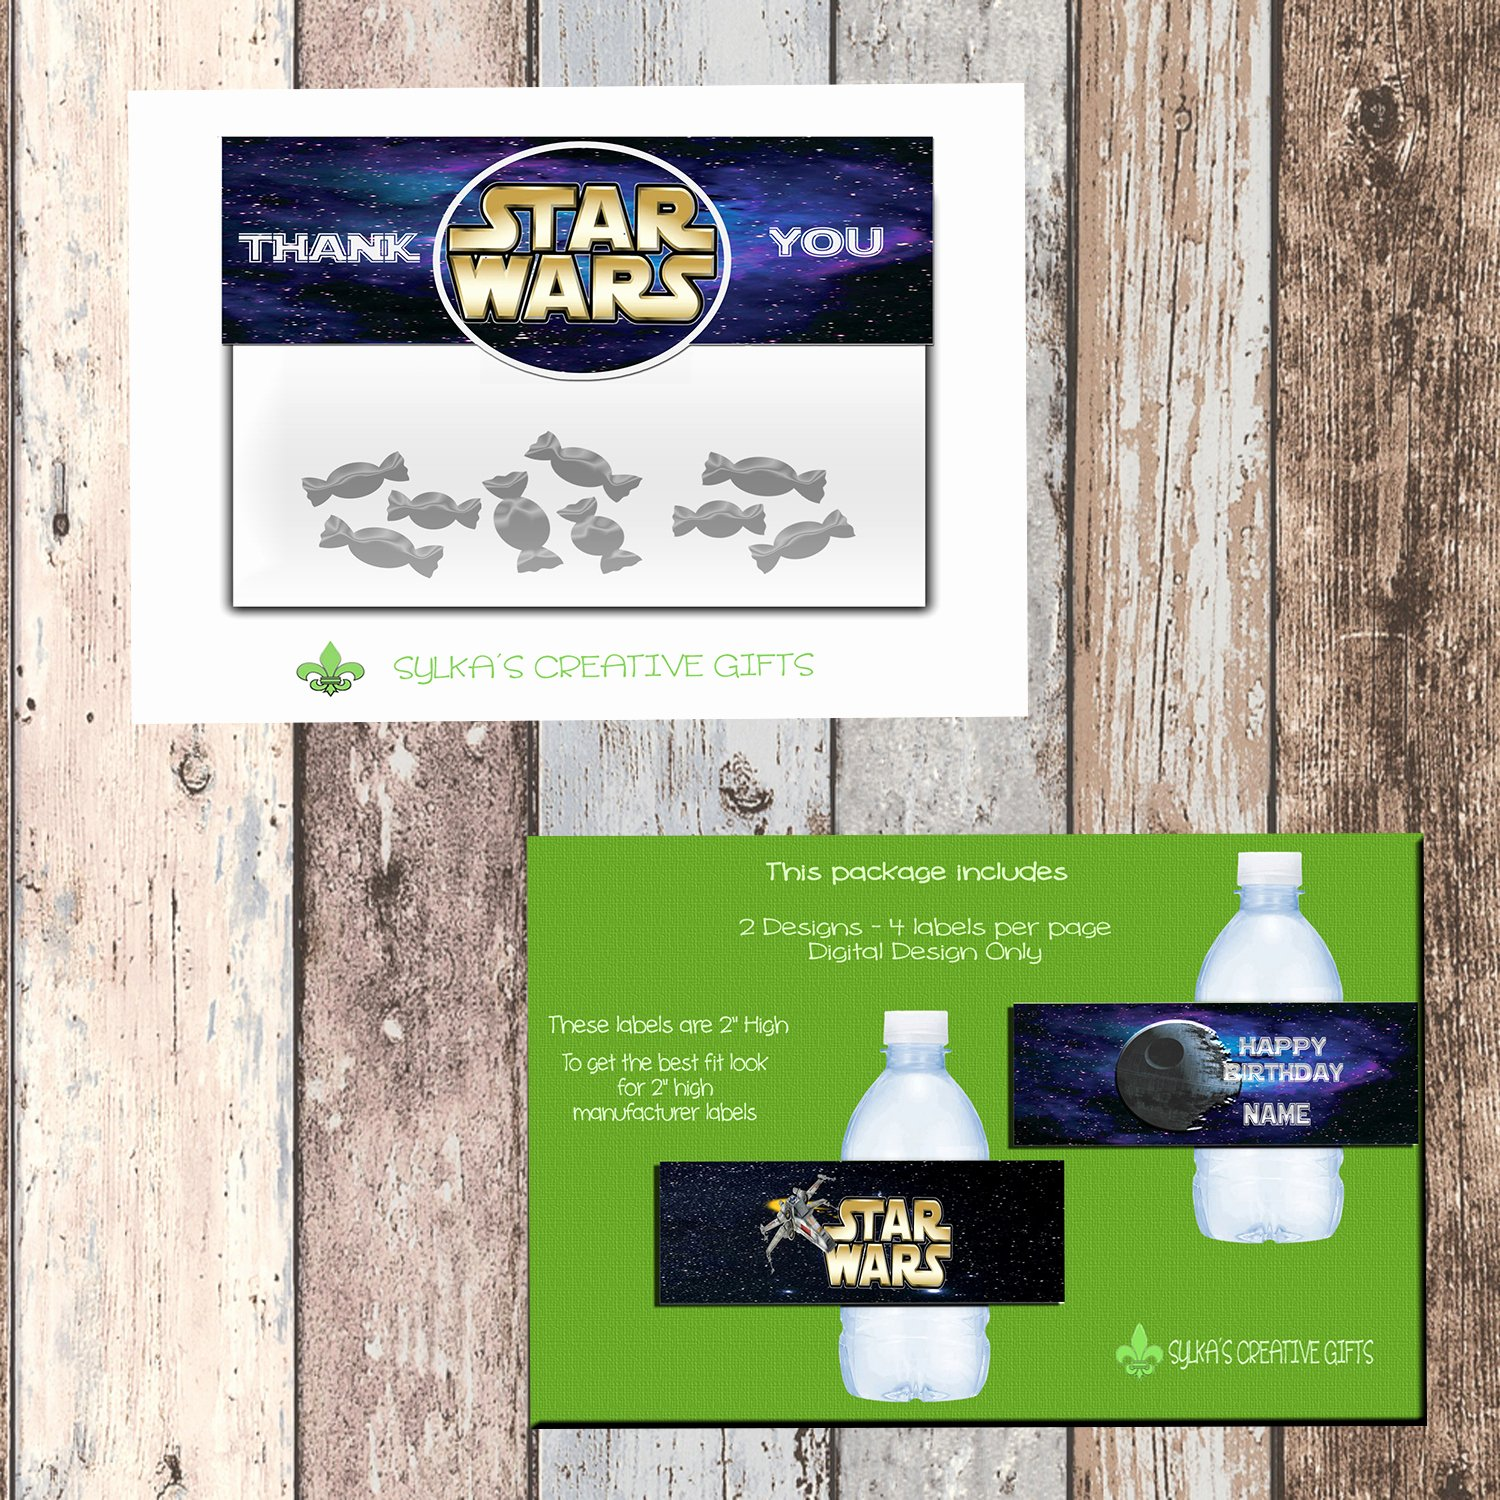 Star Wars Personalized Birthday Invitations Best Of Star Wars Personalized Birthday Invitation 2 Sided Birthday Card Party Invitation Star Wars